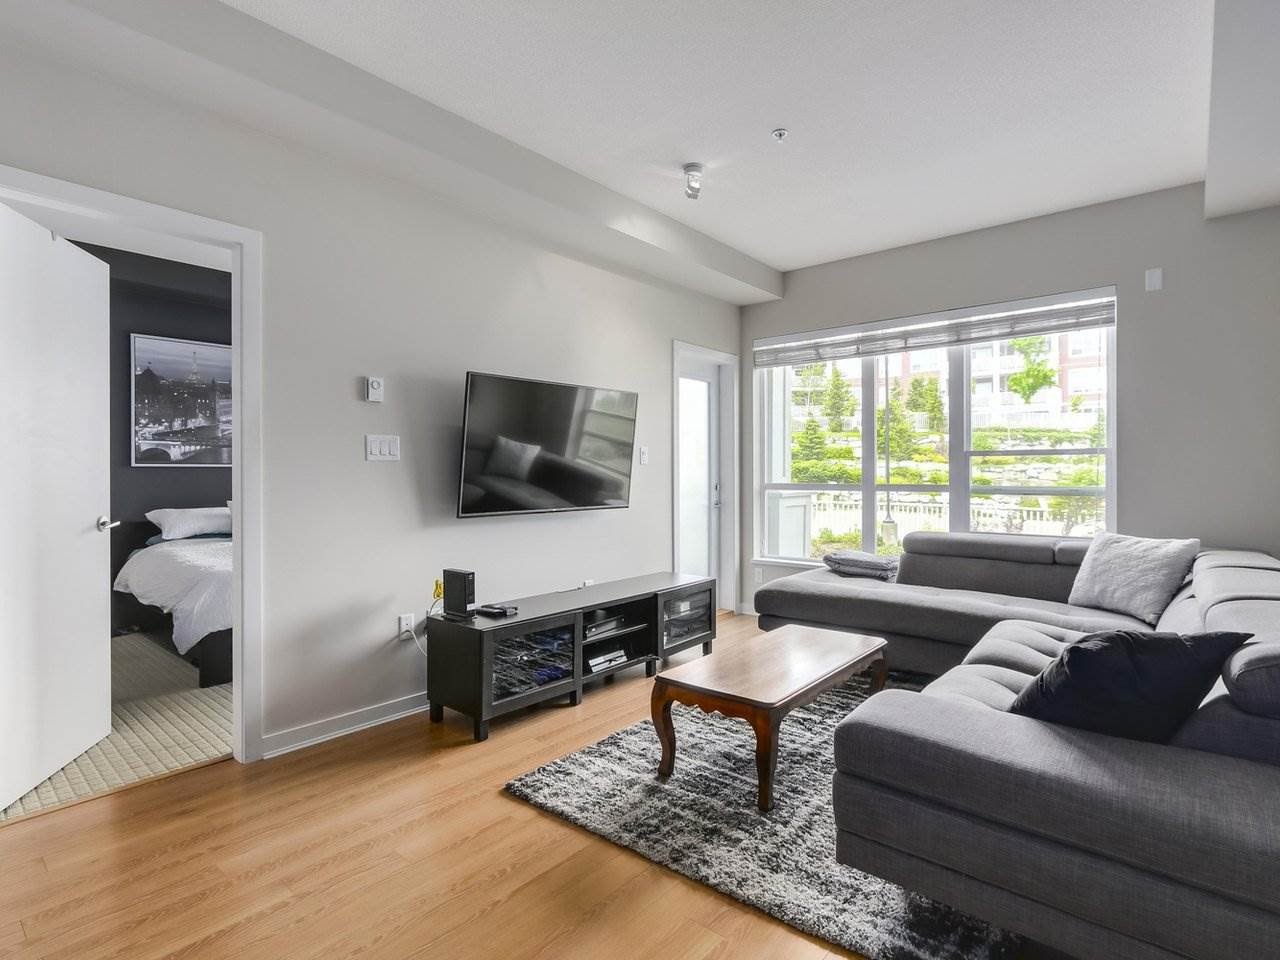 """Main Photo: 209 6440 194 Street in Surrey: Clayton Condo for sale in """"WATERSTONE"""" (Cloverdale)  : MLS®# R2270784"""